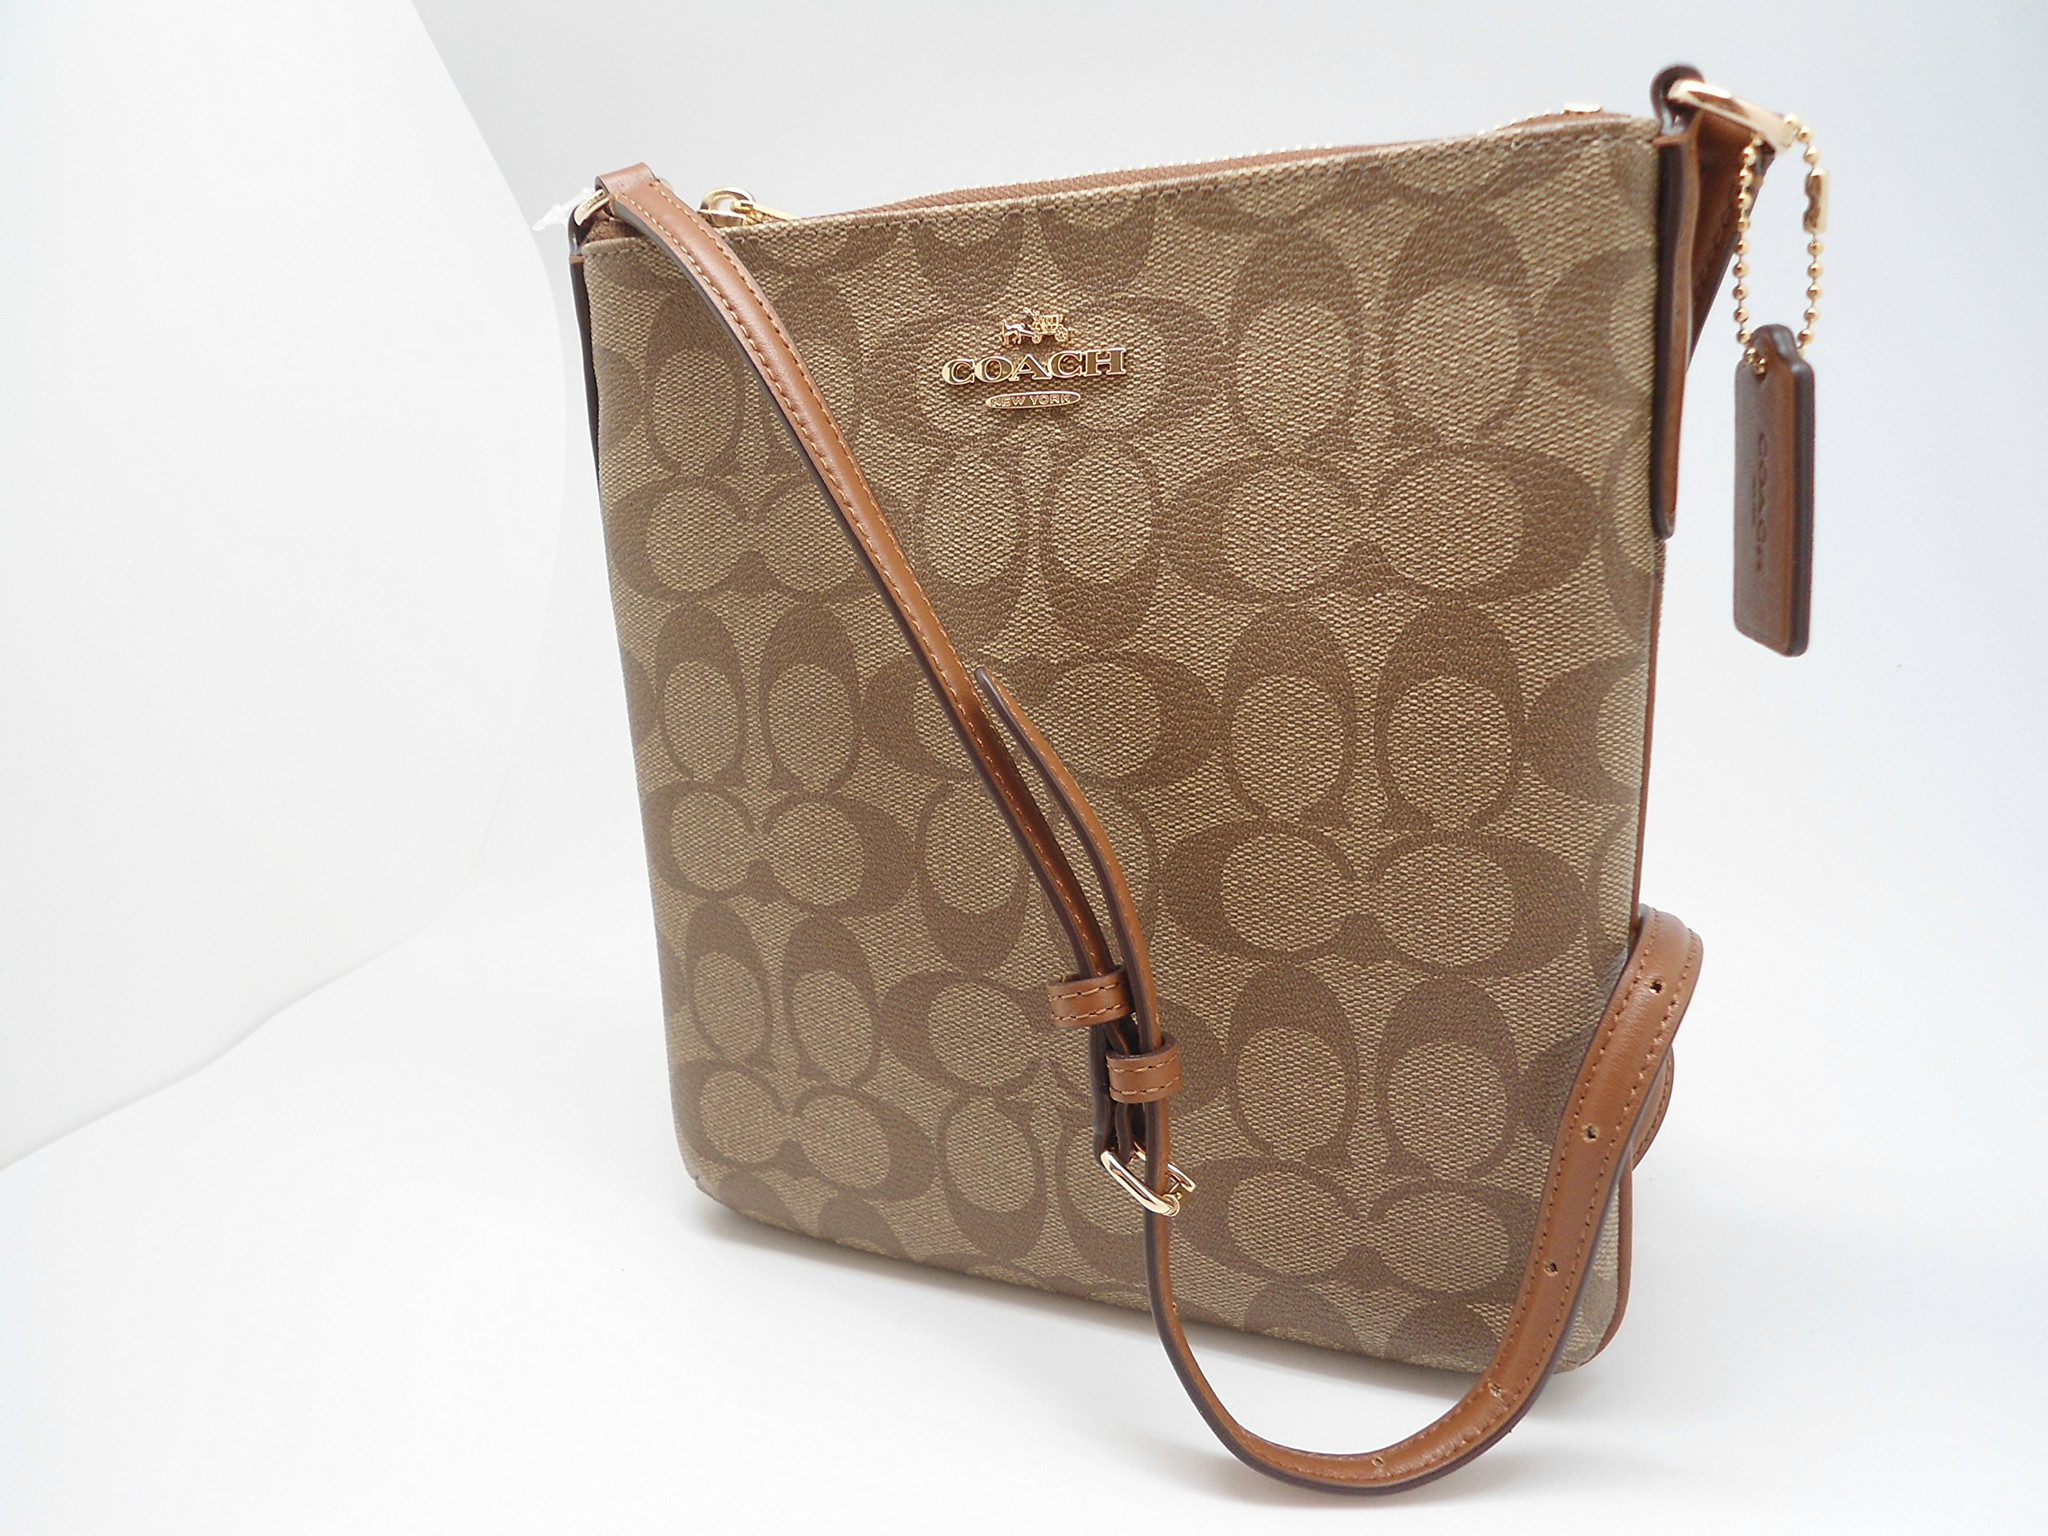 Túi Coach F35940 Crossbody In Signature Khaki/Saddle